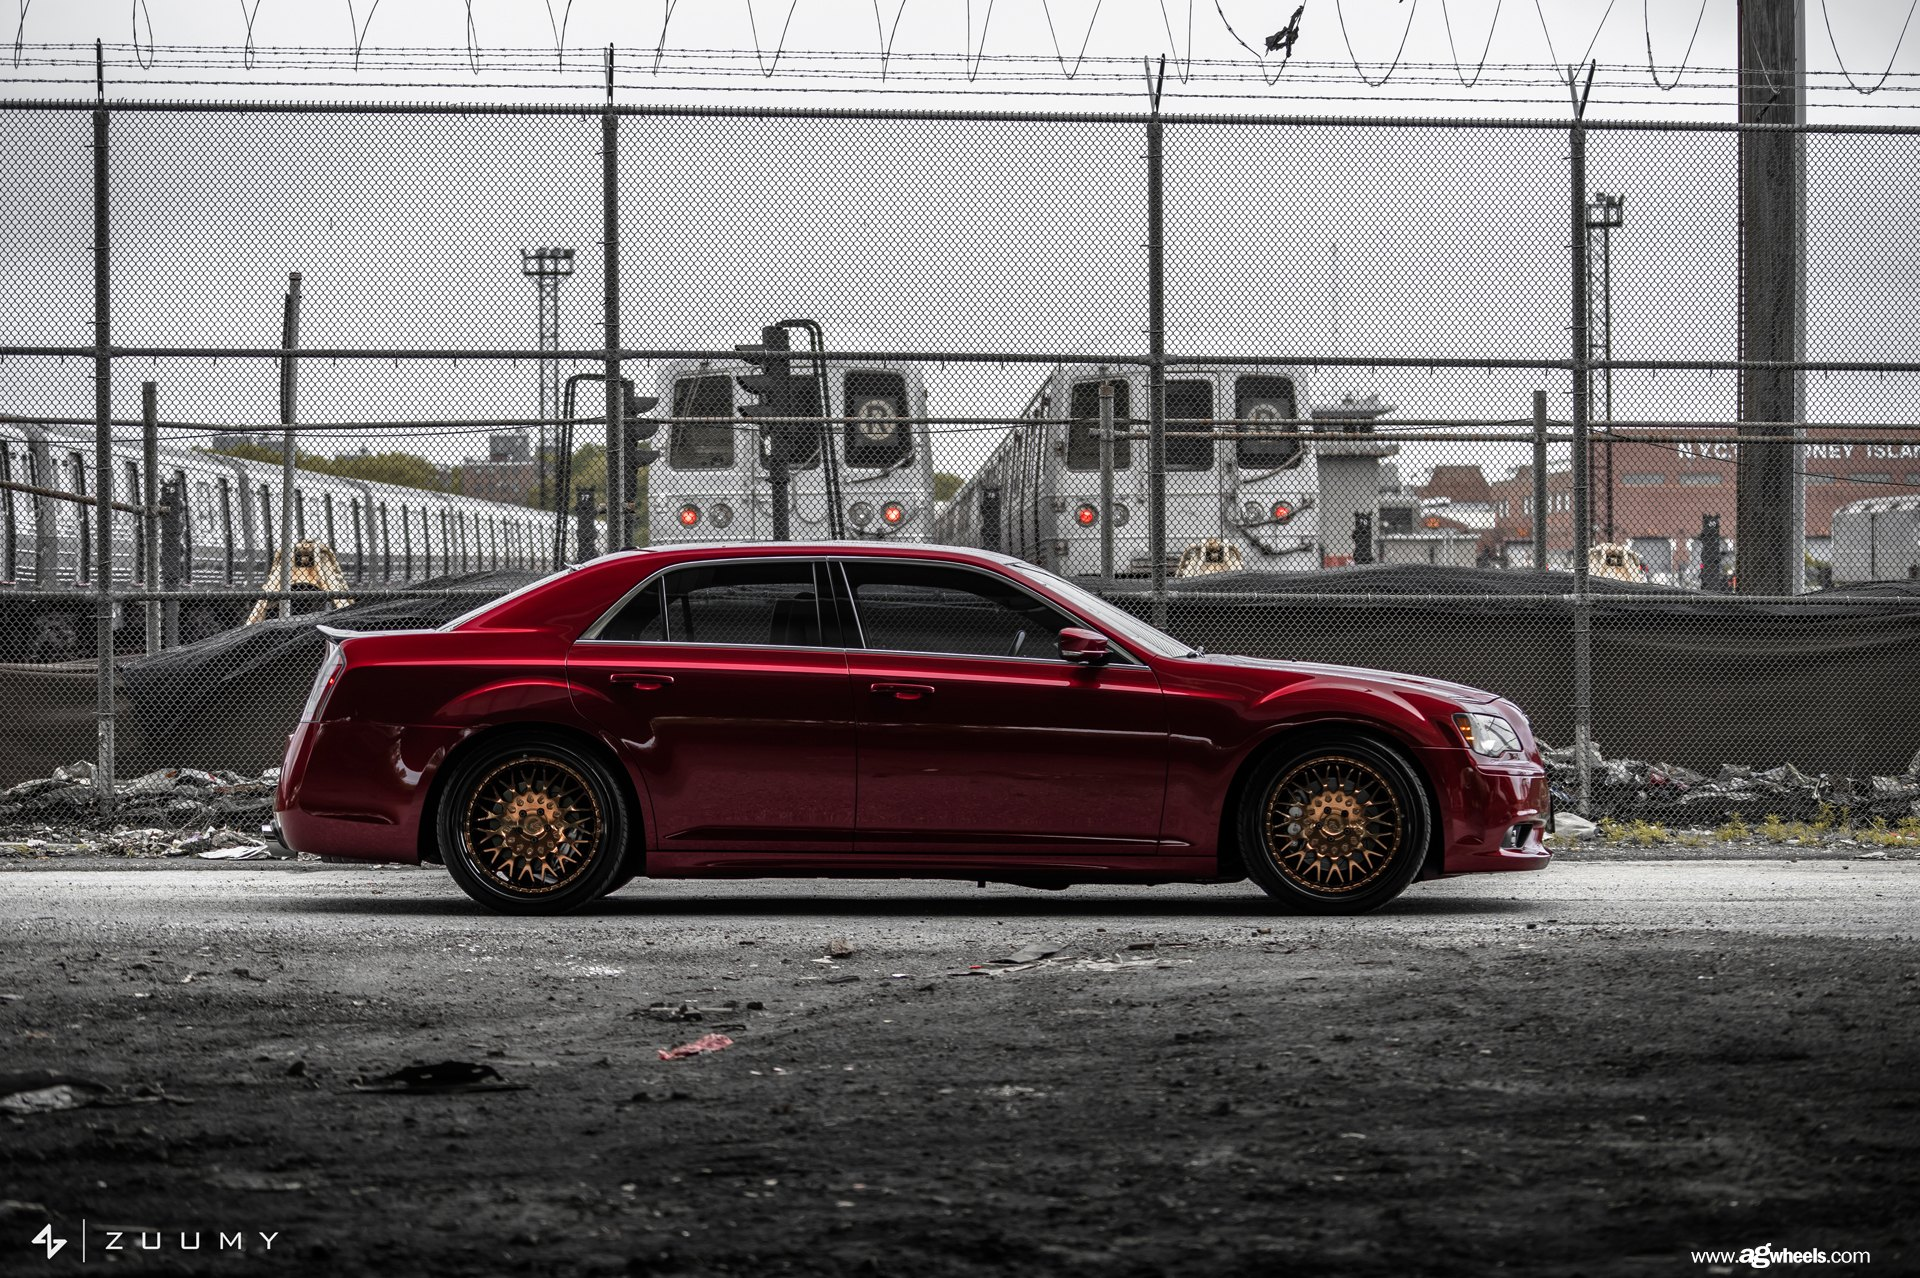 Red Chrysler 300 with Avant Garde Wheels - Photo by Avant Garde Wheels